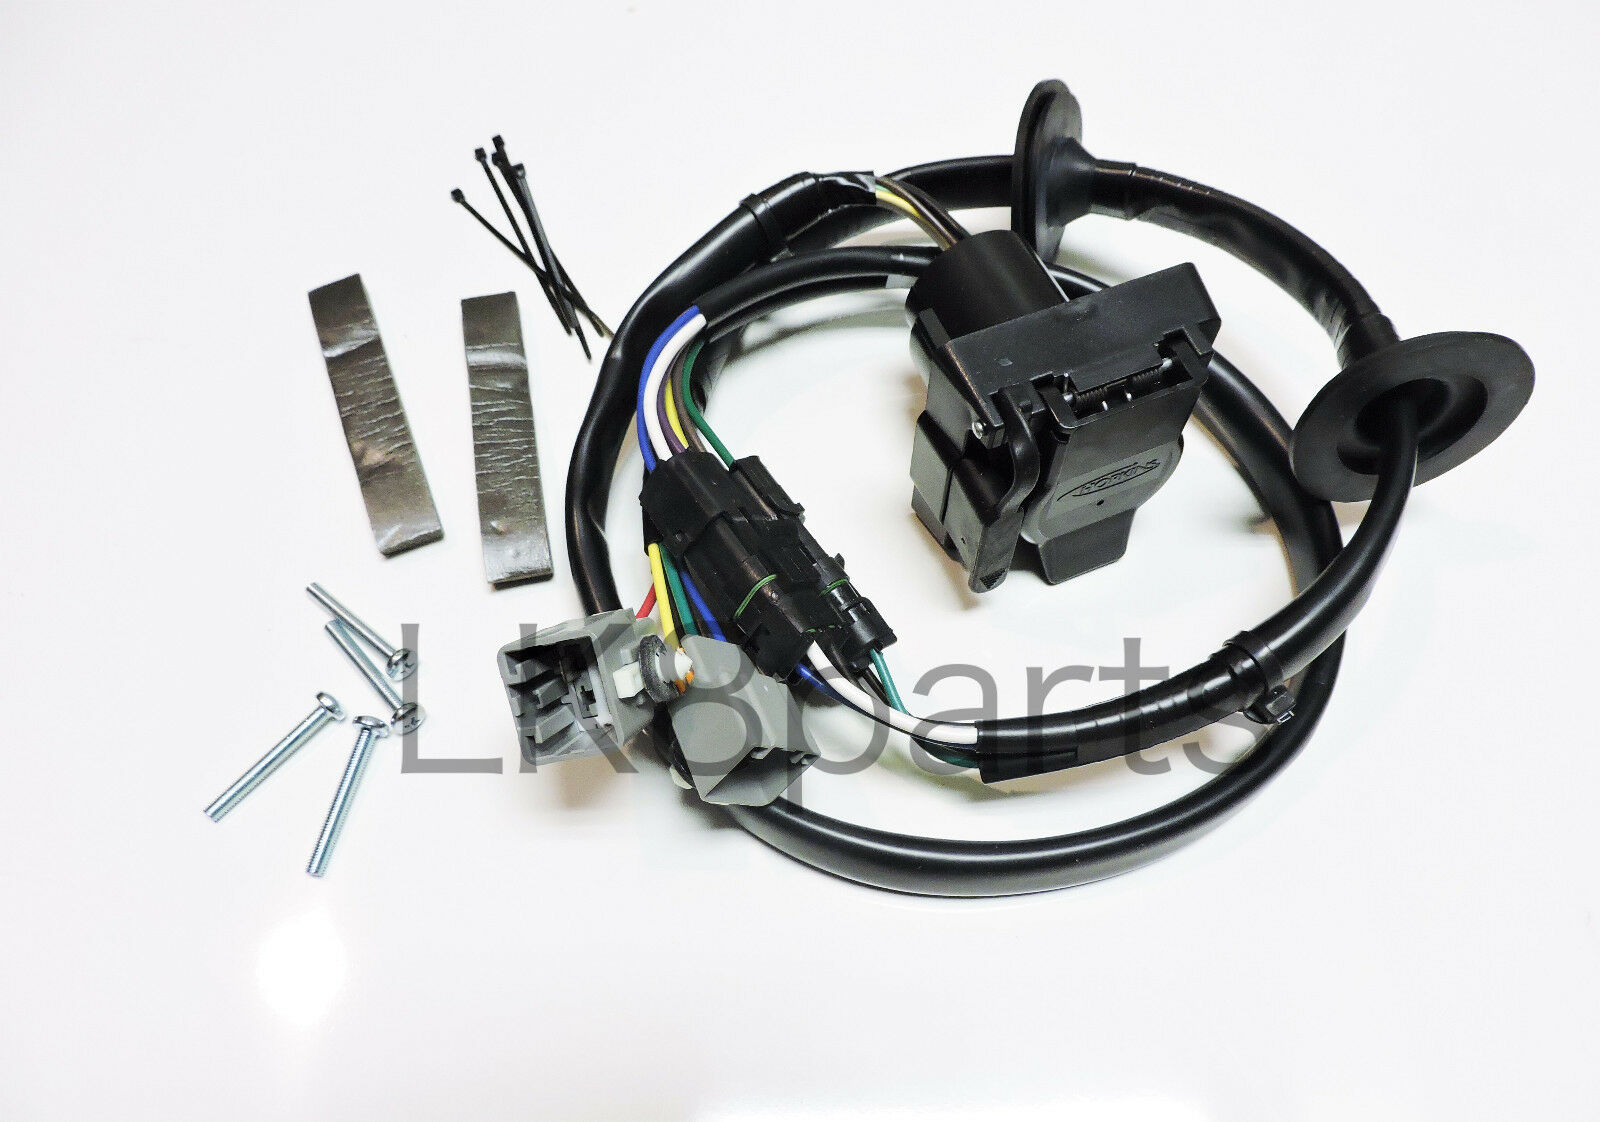 Range Rover Trailer Wiring Harness Opinions About Diagram For Pontoon Land Lr4 Tow Hitch Wire Kit 10 12 Vplat0013 New Ebay